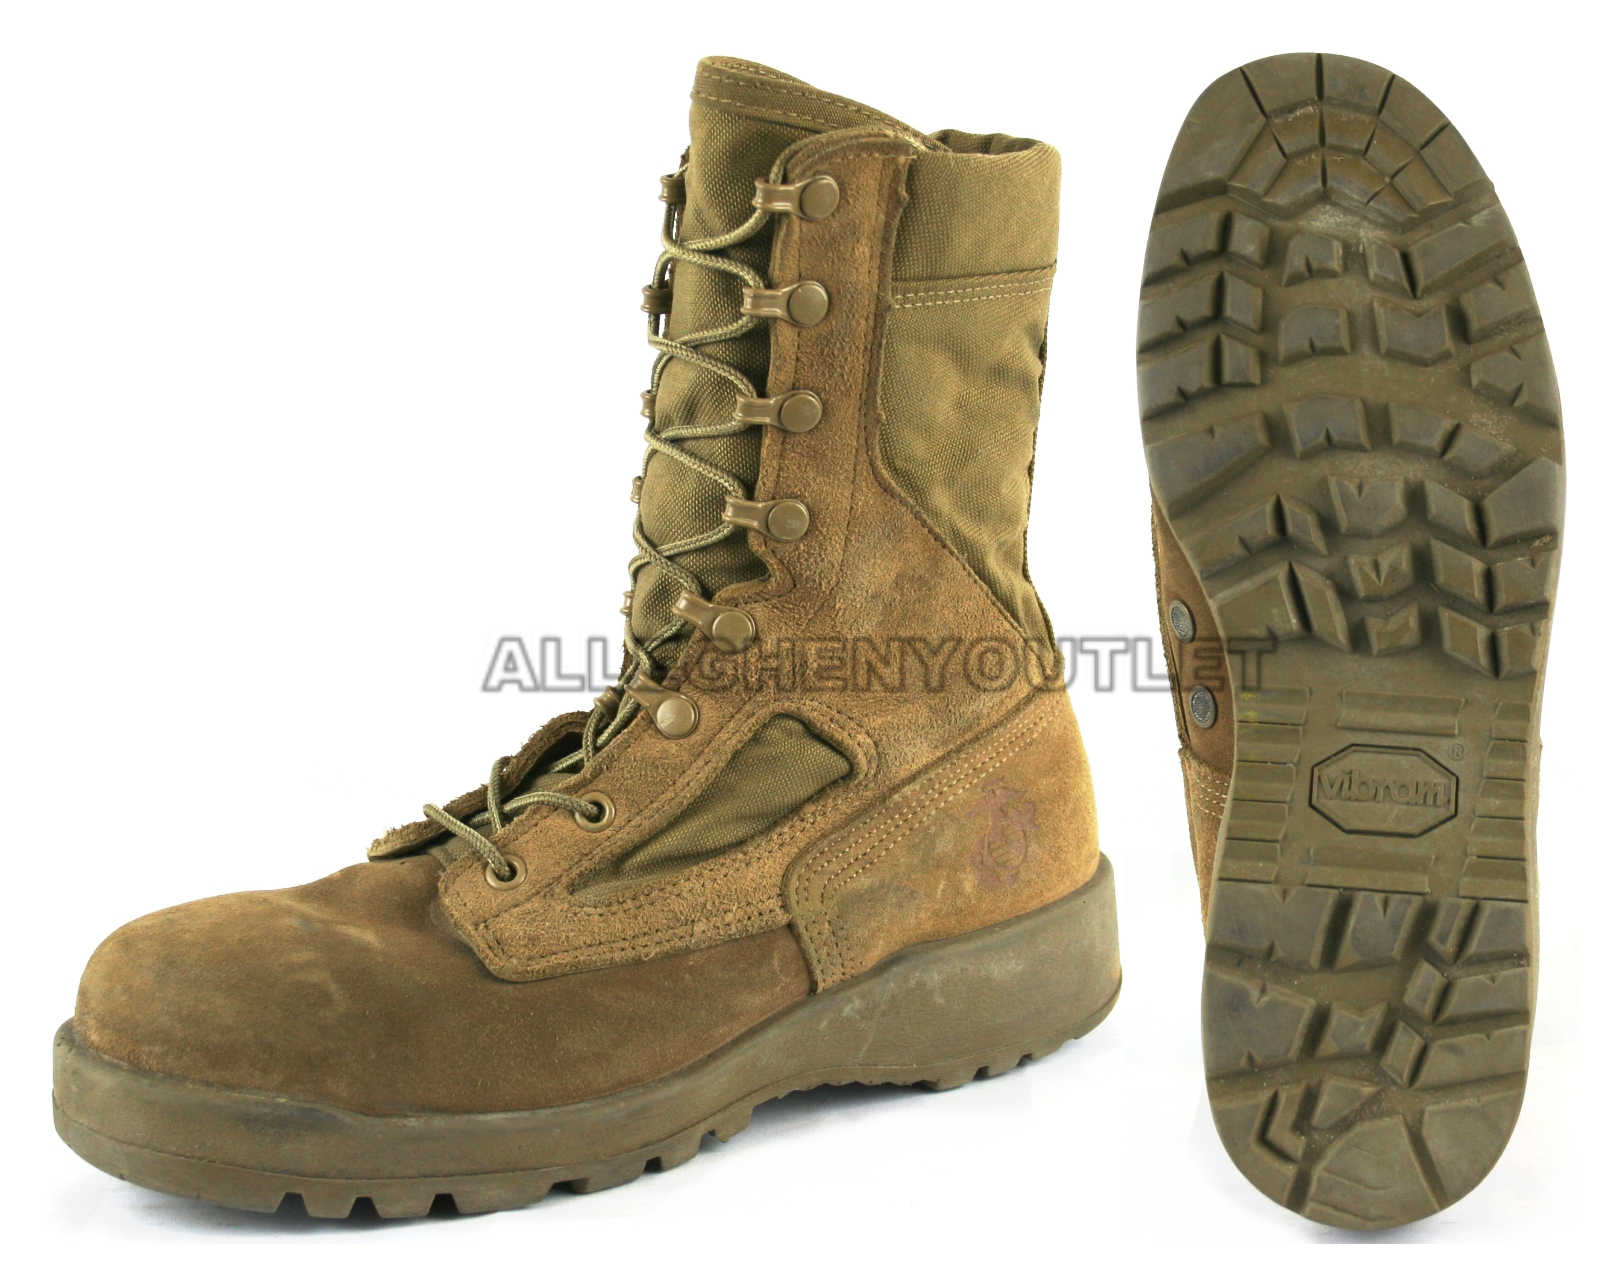 Us Military Hot Weather Coolmax Combat Boots Vibram Sole